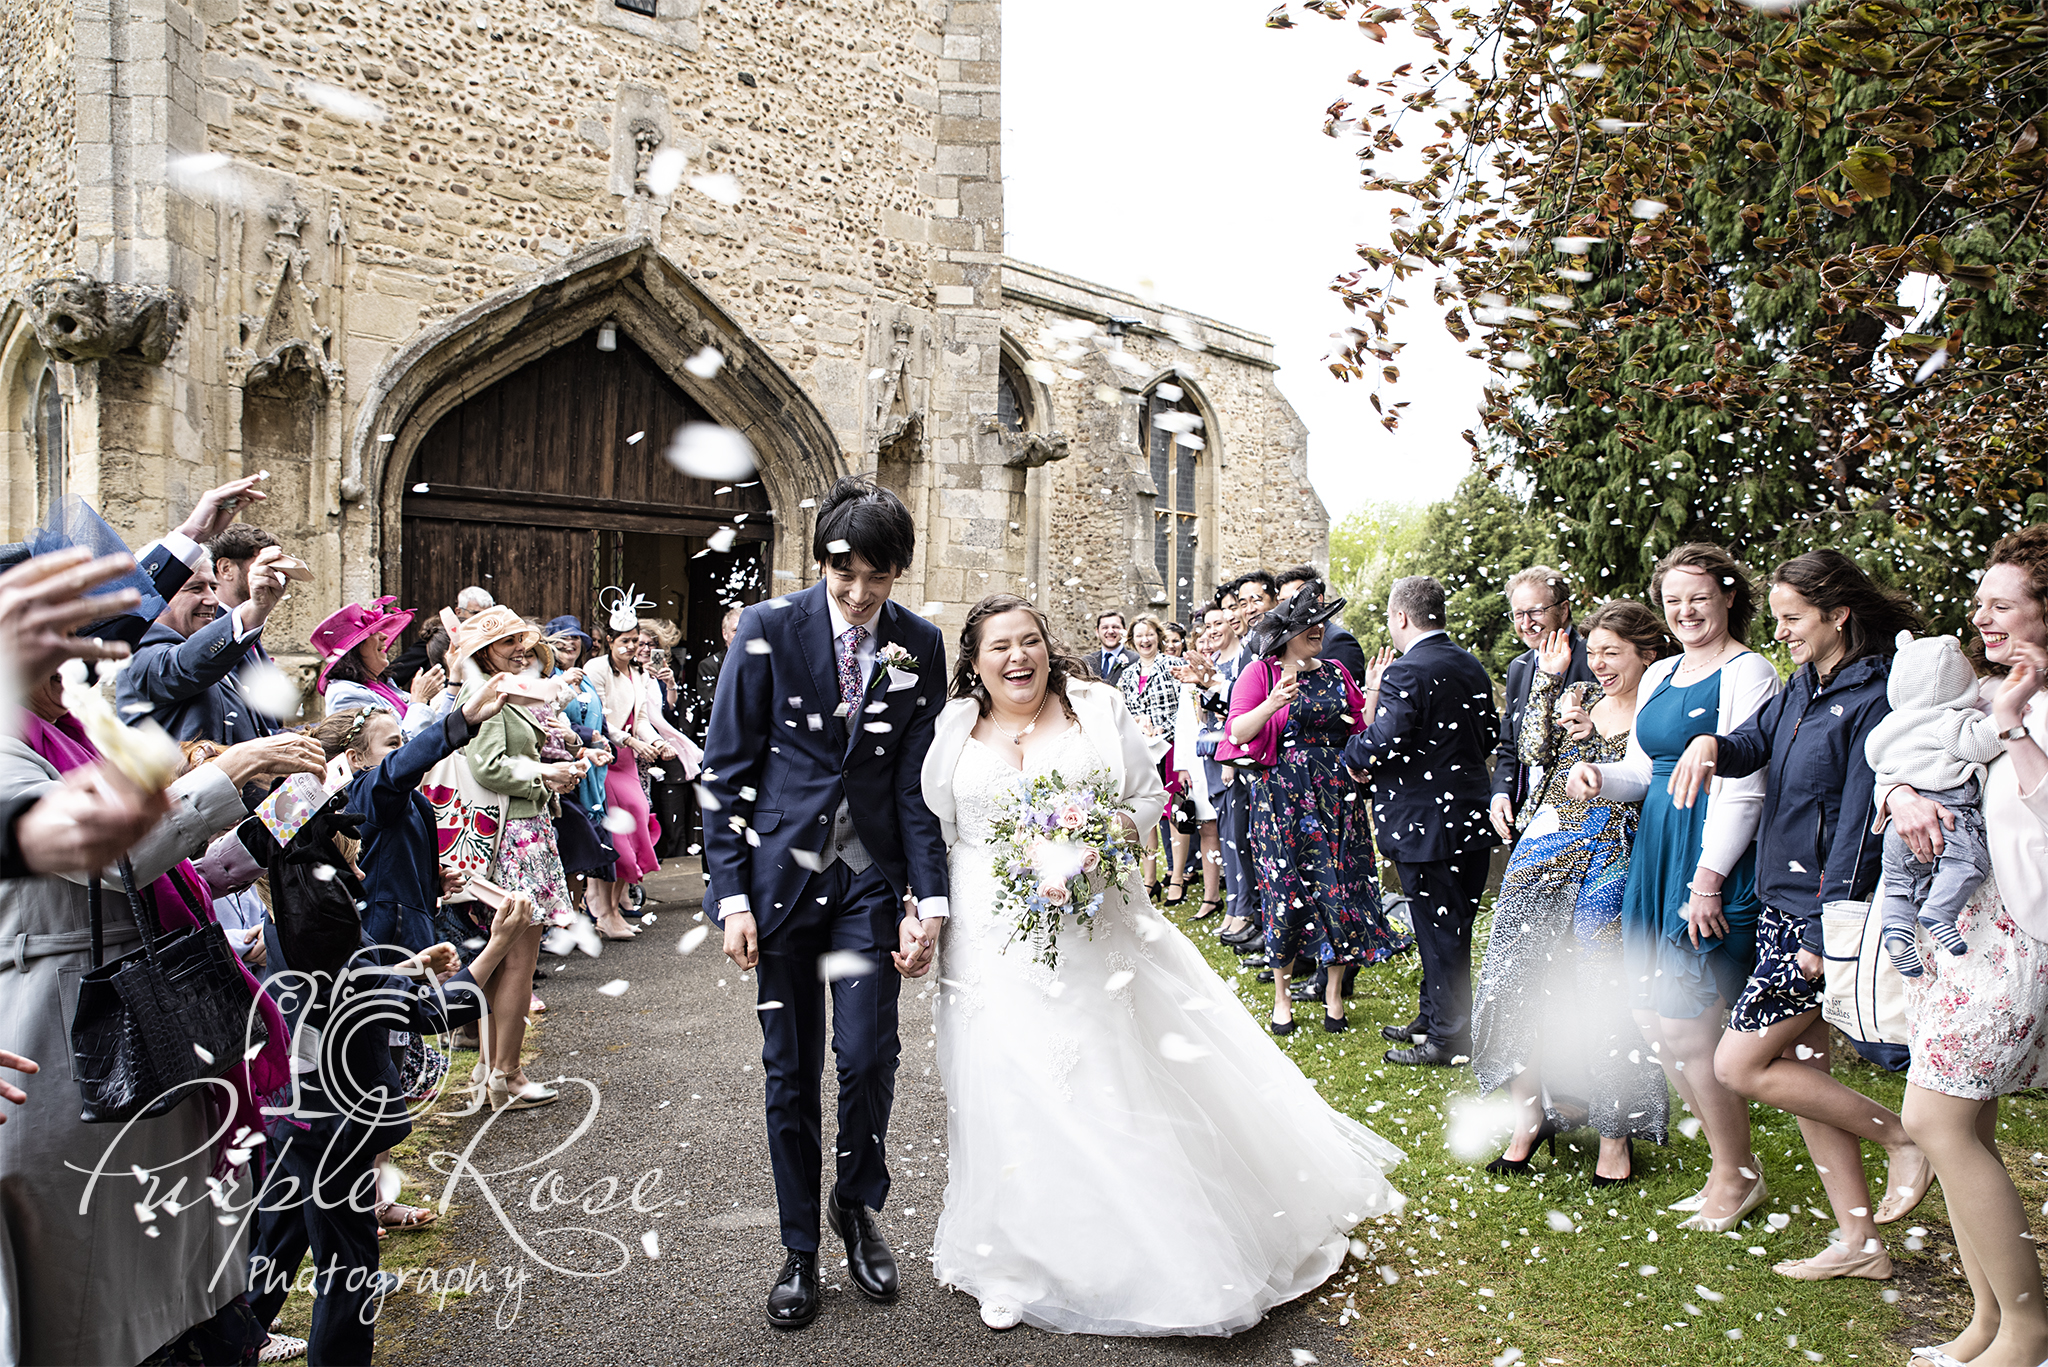 Bride and groom being showered in confetti as they leave the church